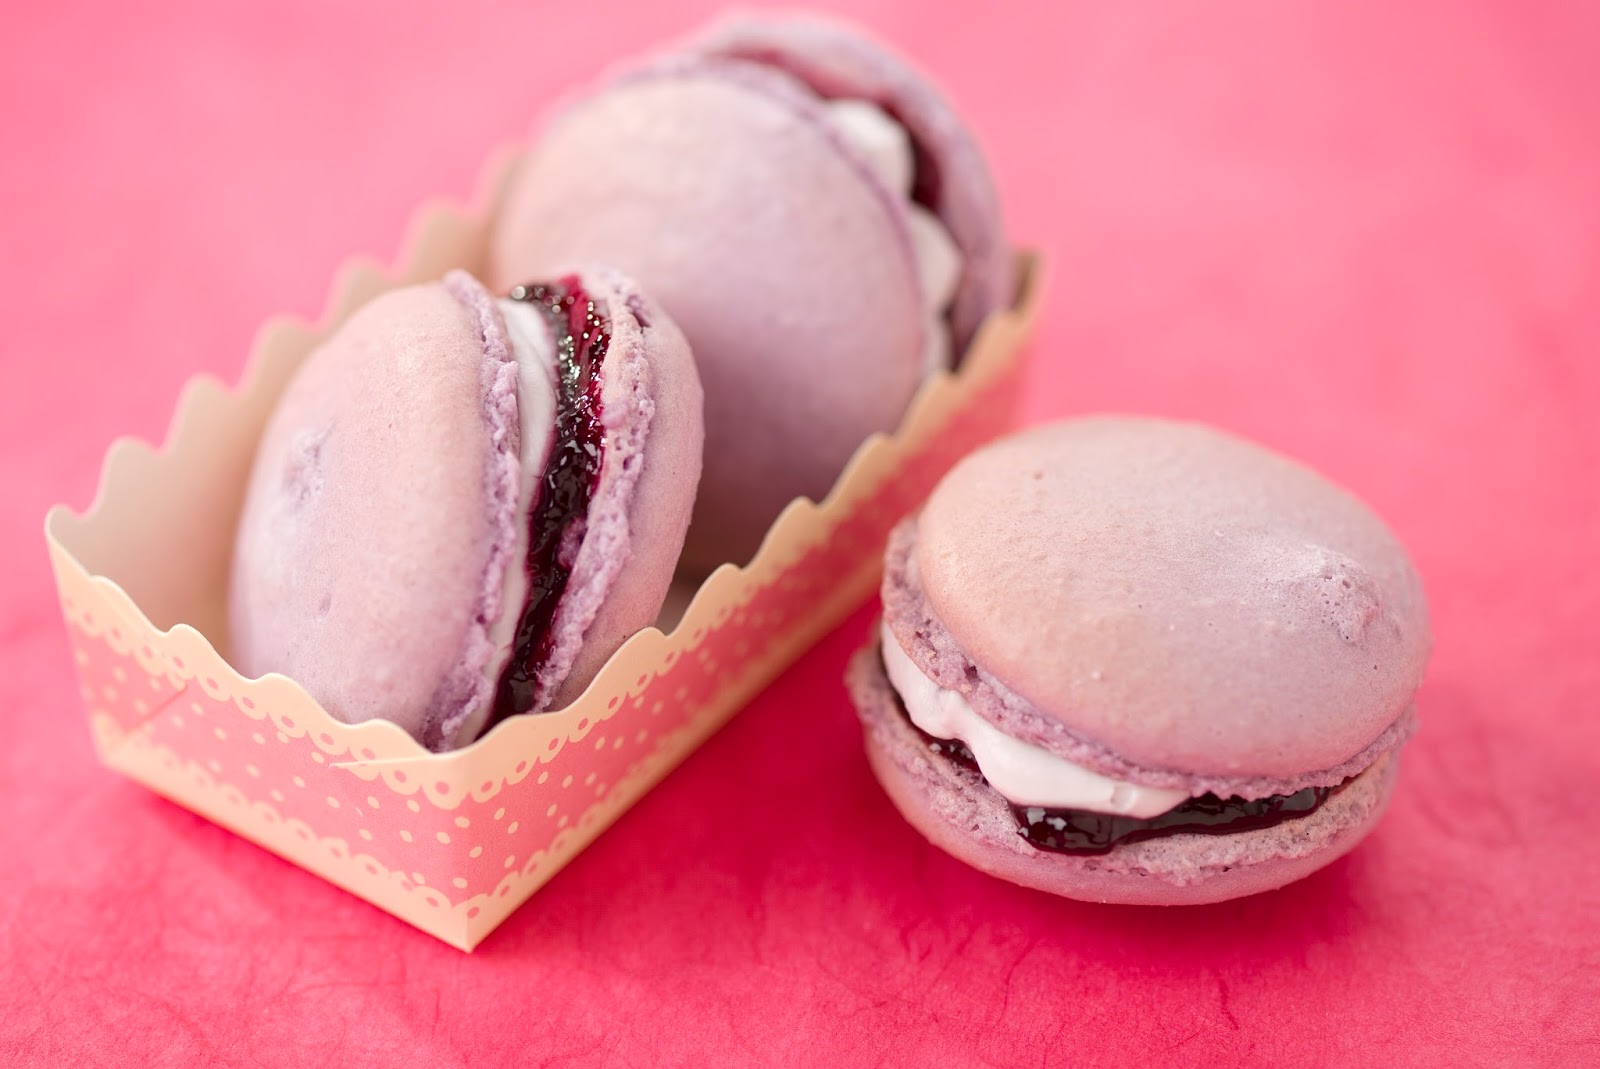 Blueberry Macaroons Recipe: Great For Afternoon Tea